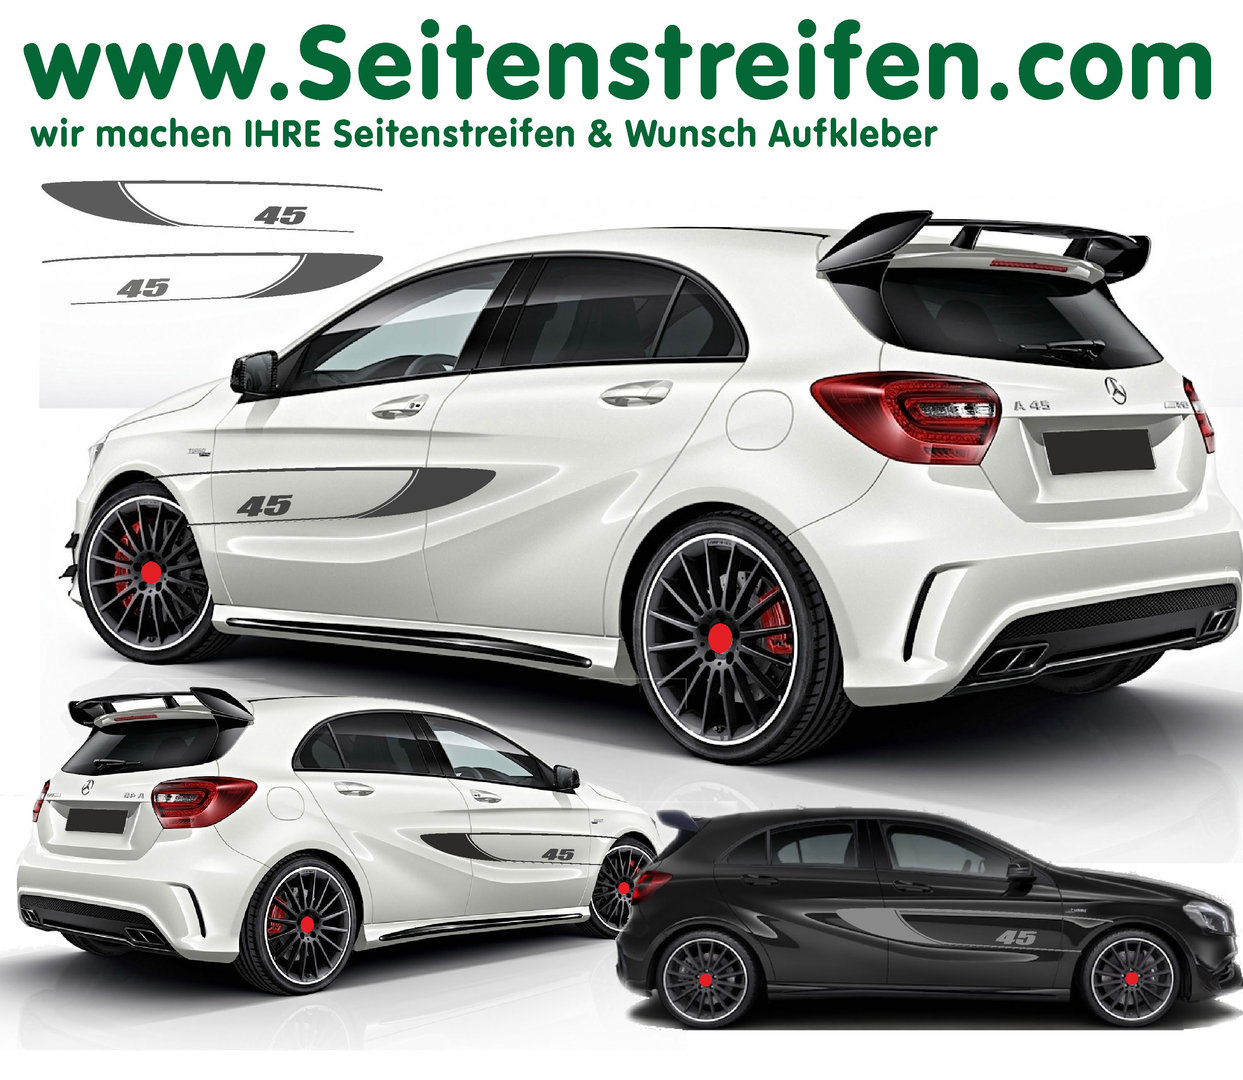 Mercedes Benz AMG 45 Edition 1 Clase A  set de pegatinas laterales - 6103